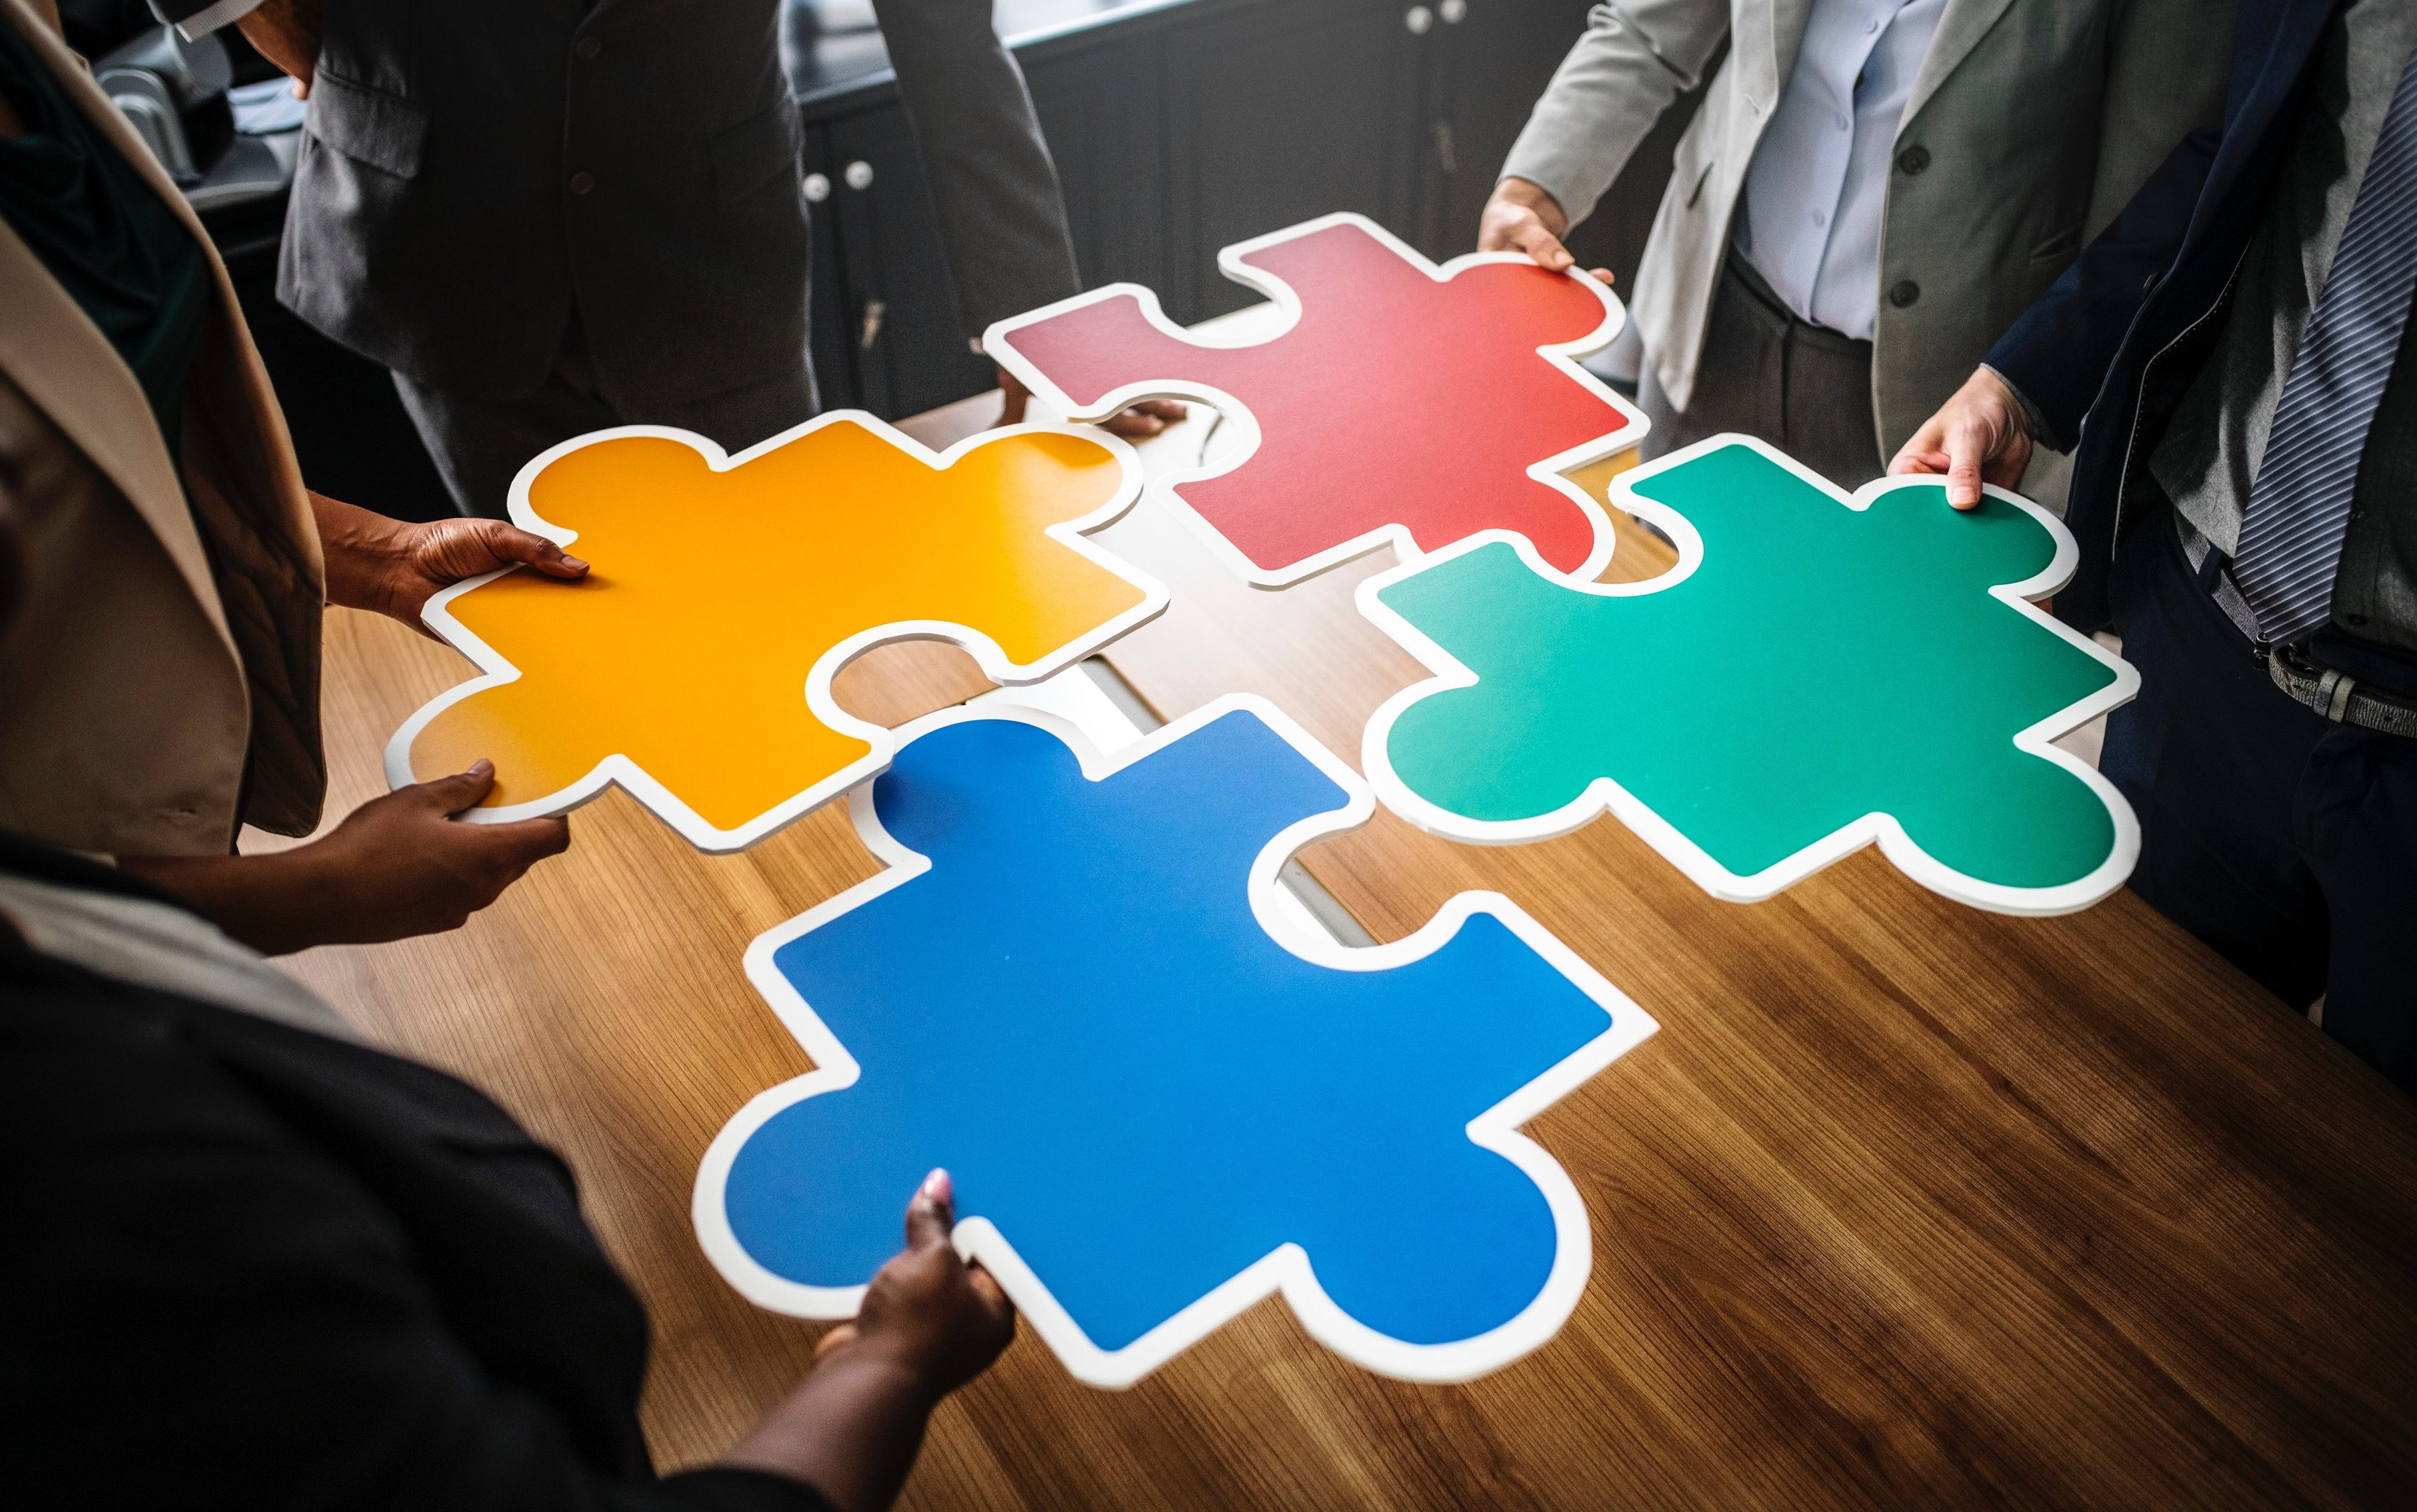 three-people-holding-puzzles-and-assembling-on-brown-wooden-table